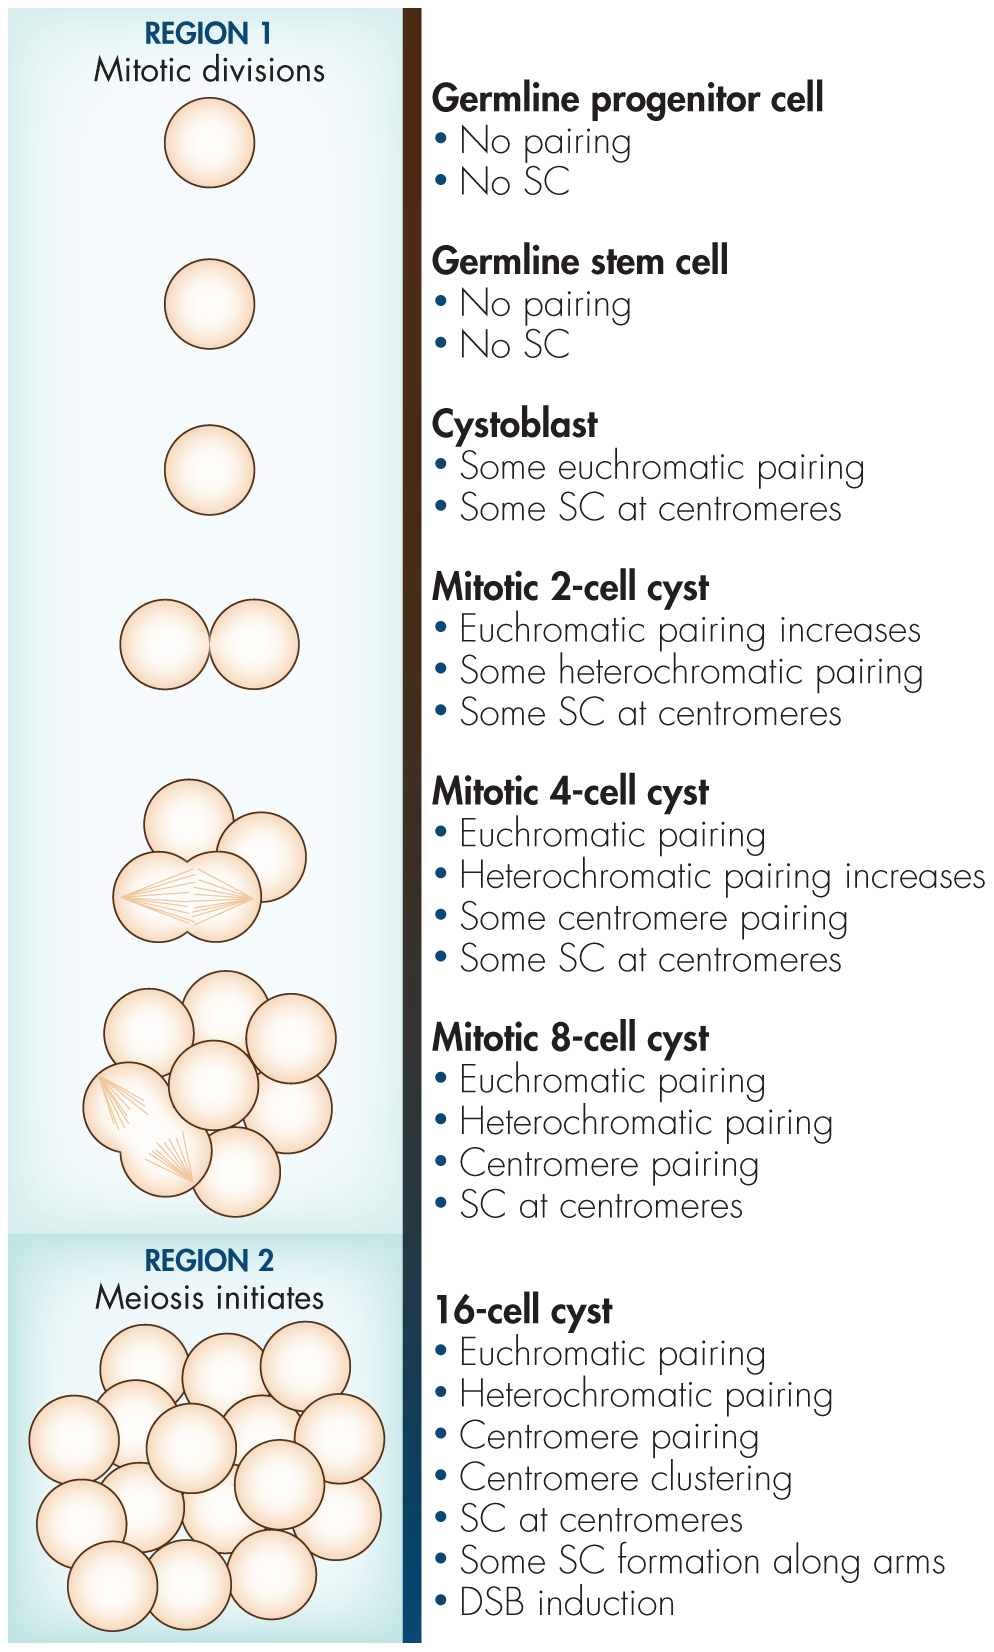 Diagram of events in premeiotic germline with respect to autosome pairing, centromere clustering, and SC formation based on the results from Joyce et al. <em class=&quot;ref&quot;>[2]</em> and Christophorou et al. <em class=&quot;ref&quot;>[1]</em>.